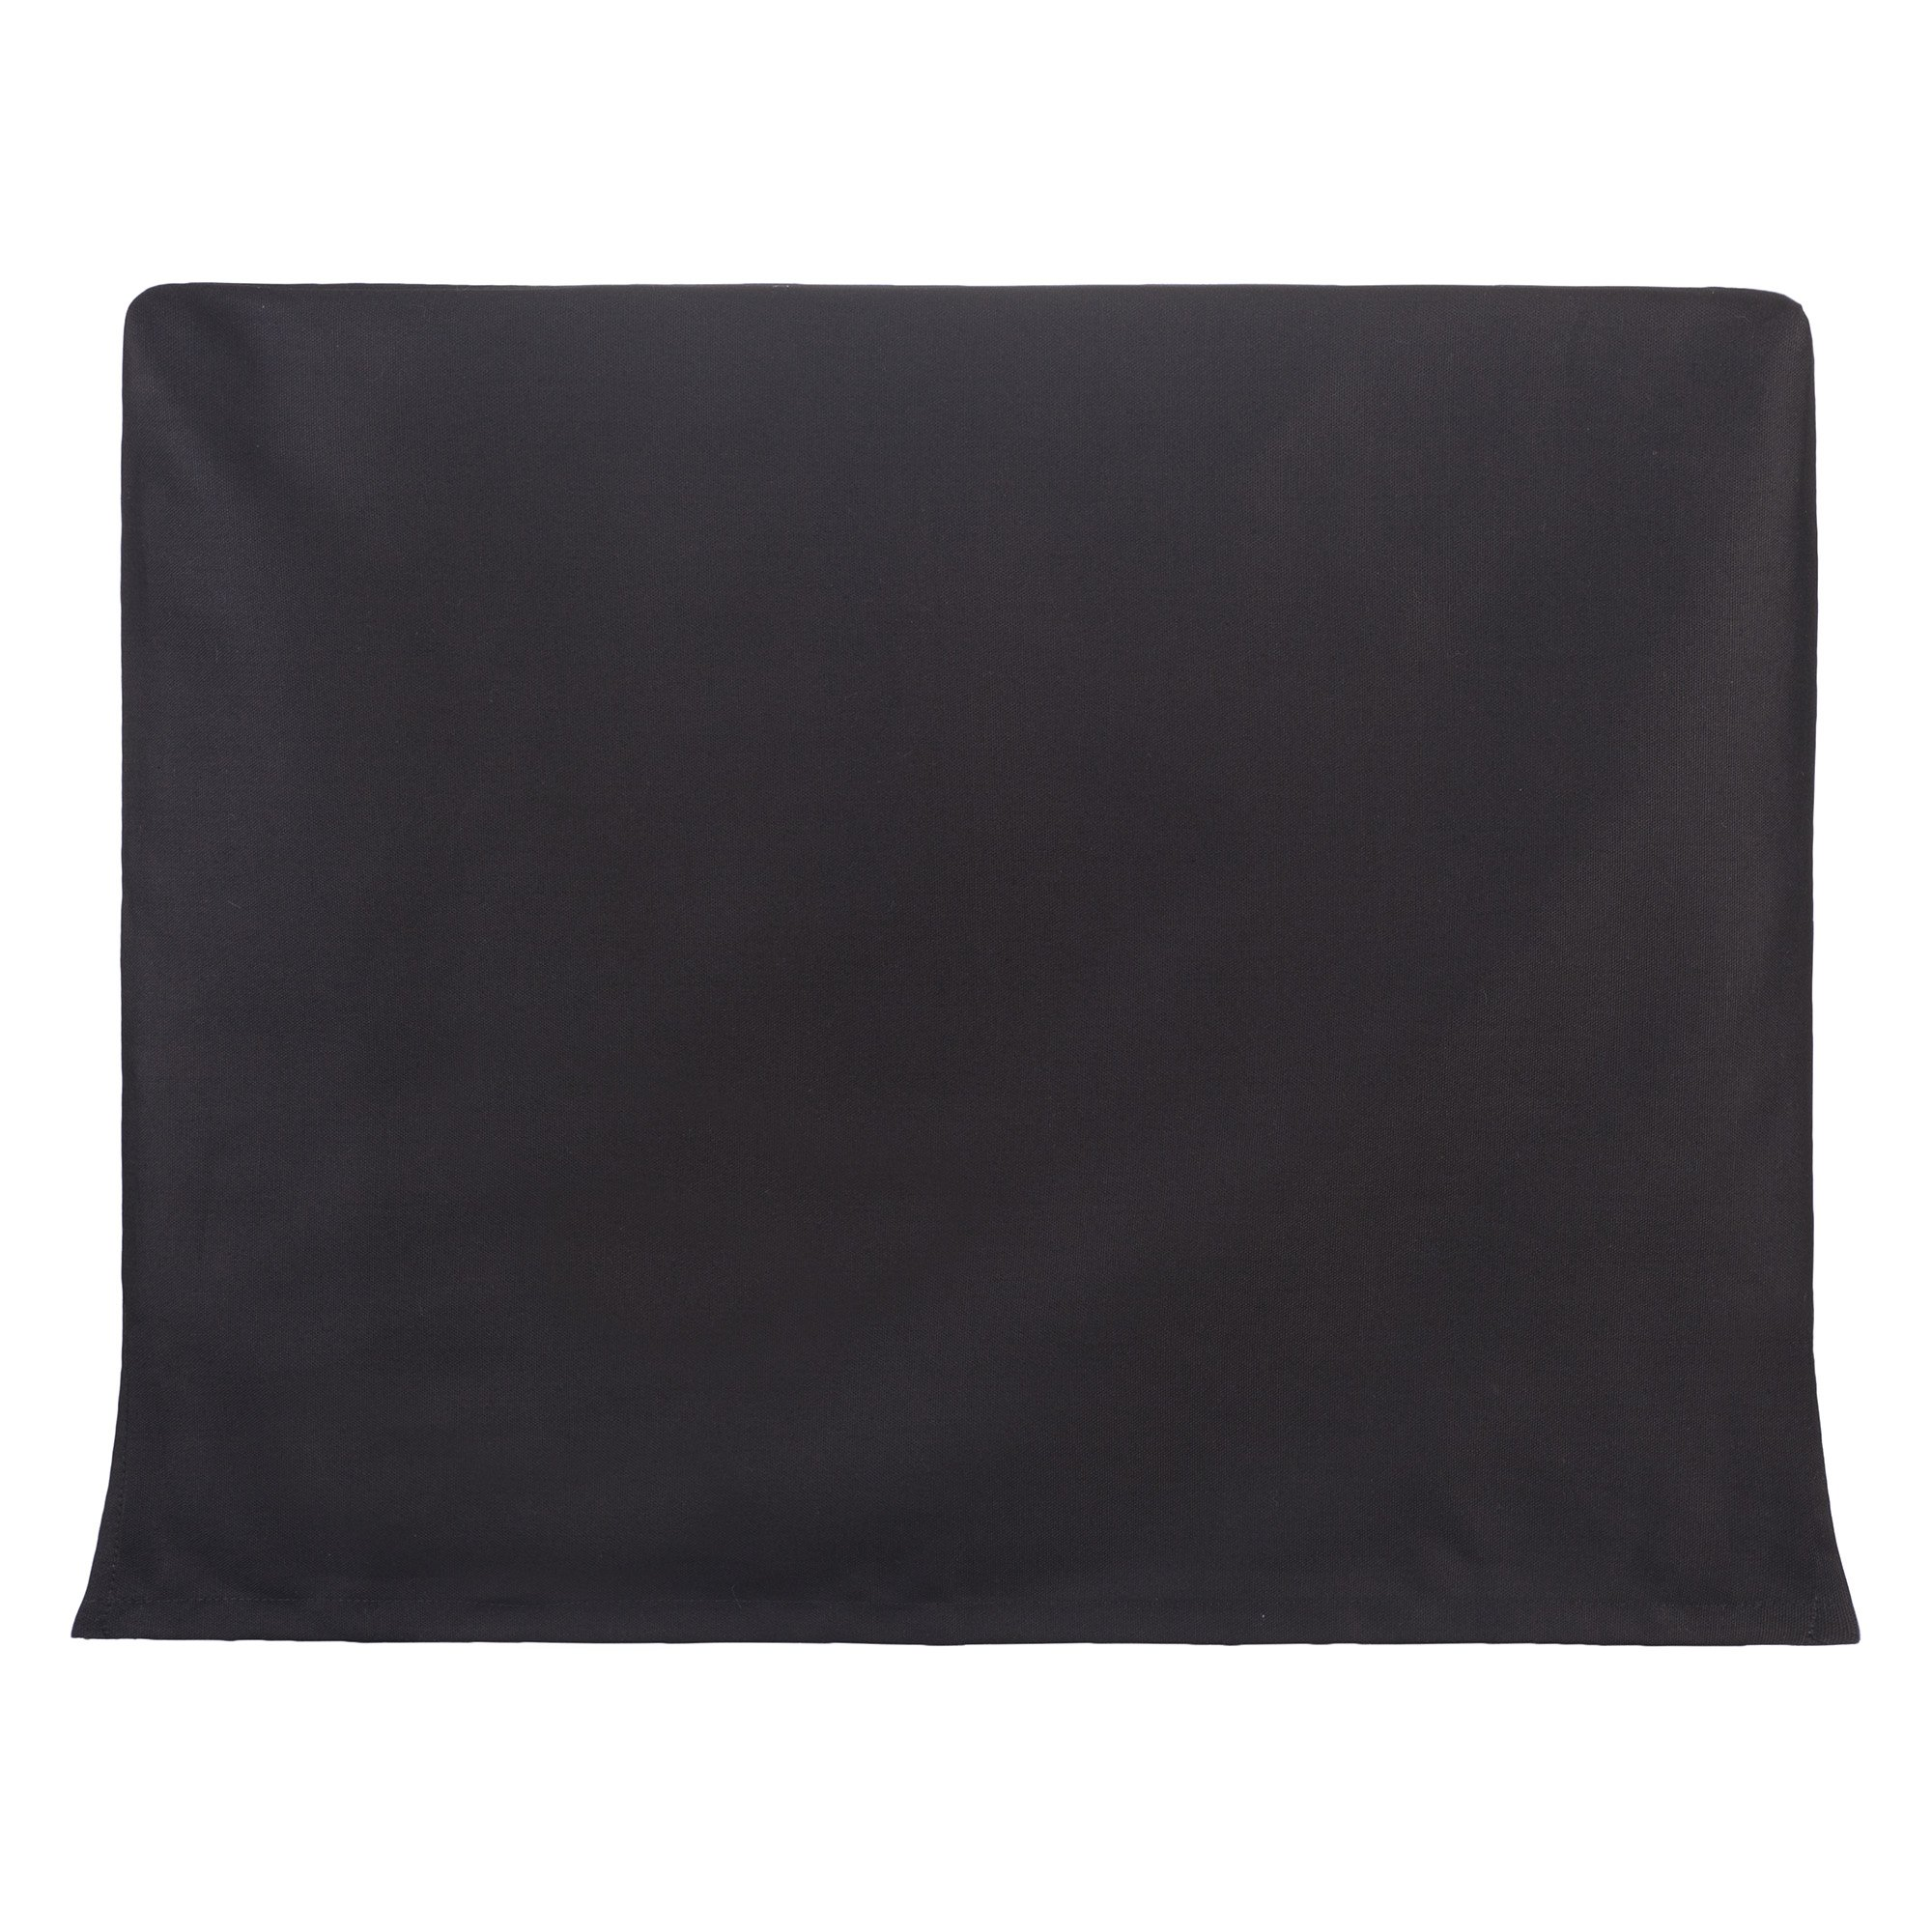 Kuzy - TV Cover 40'', Display Protector for Flat Screen up to 40-inch Dust Cover - Made in USA - Black by Kuzy